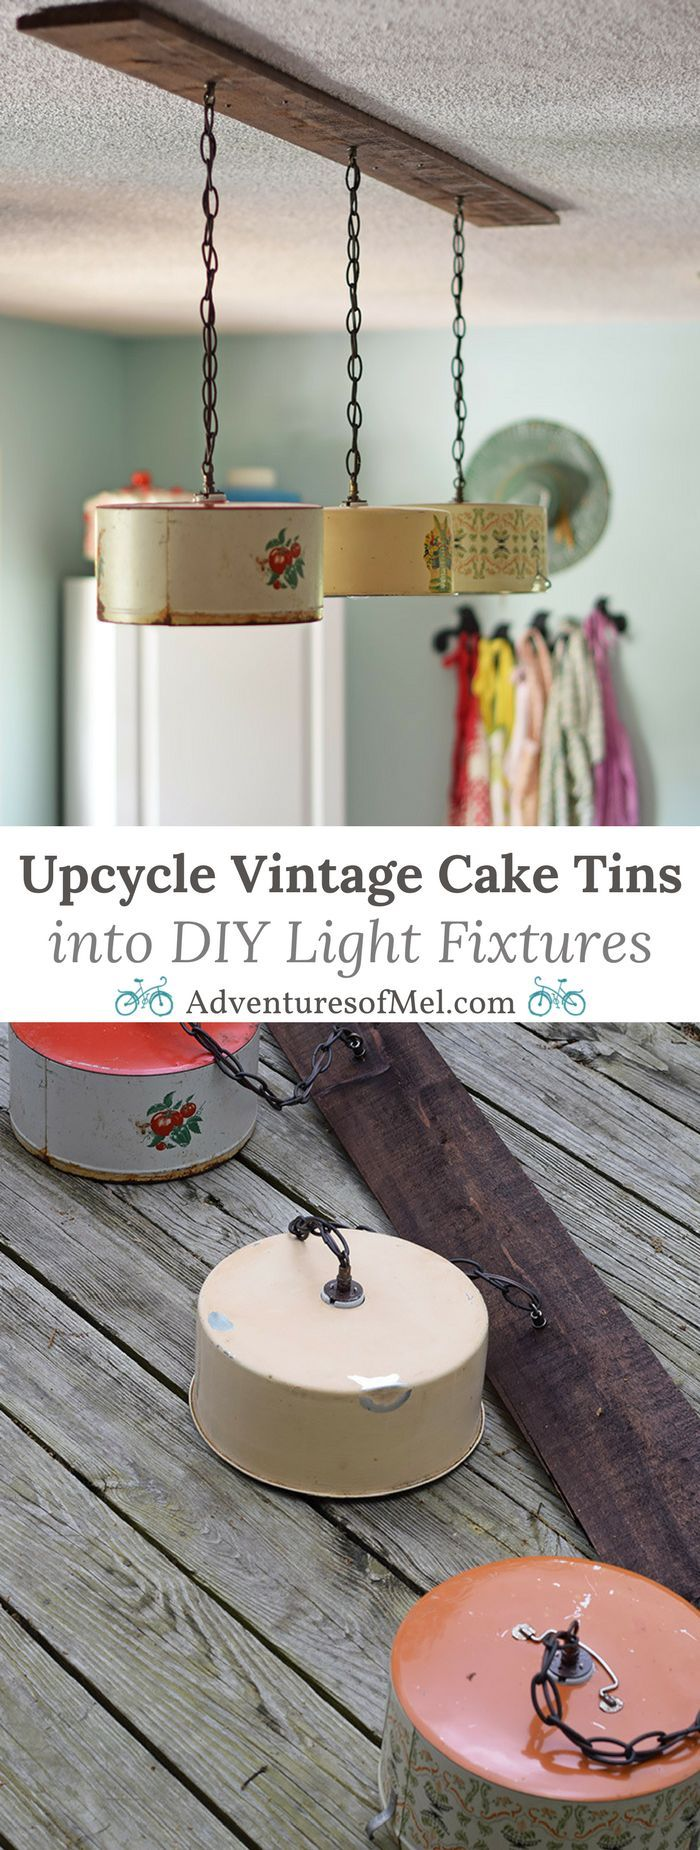 Create A Farmhouse Kitchen Look With Diy Light Fixtures Upcycled From Vintage Cake Tins How